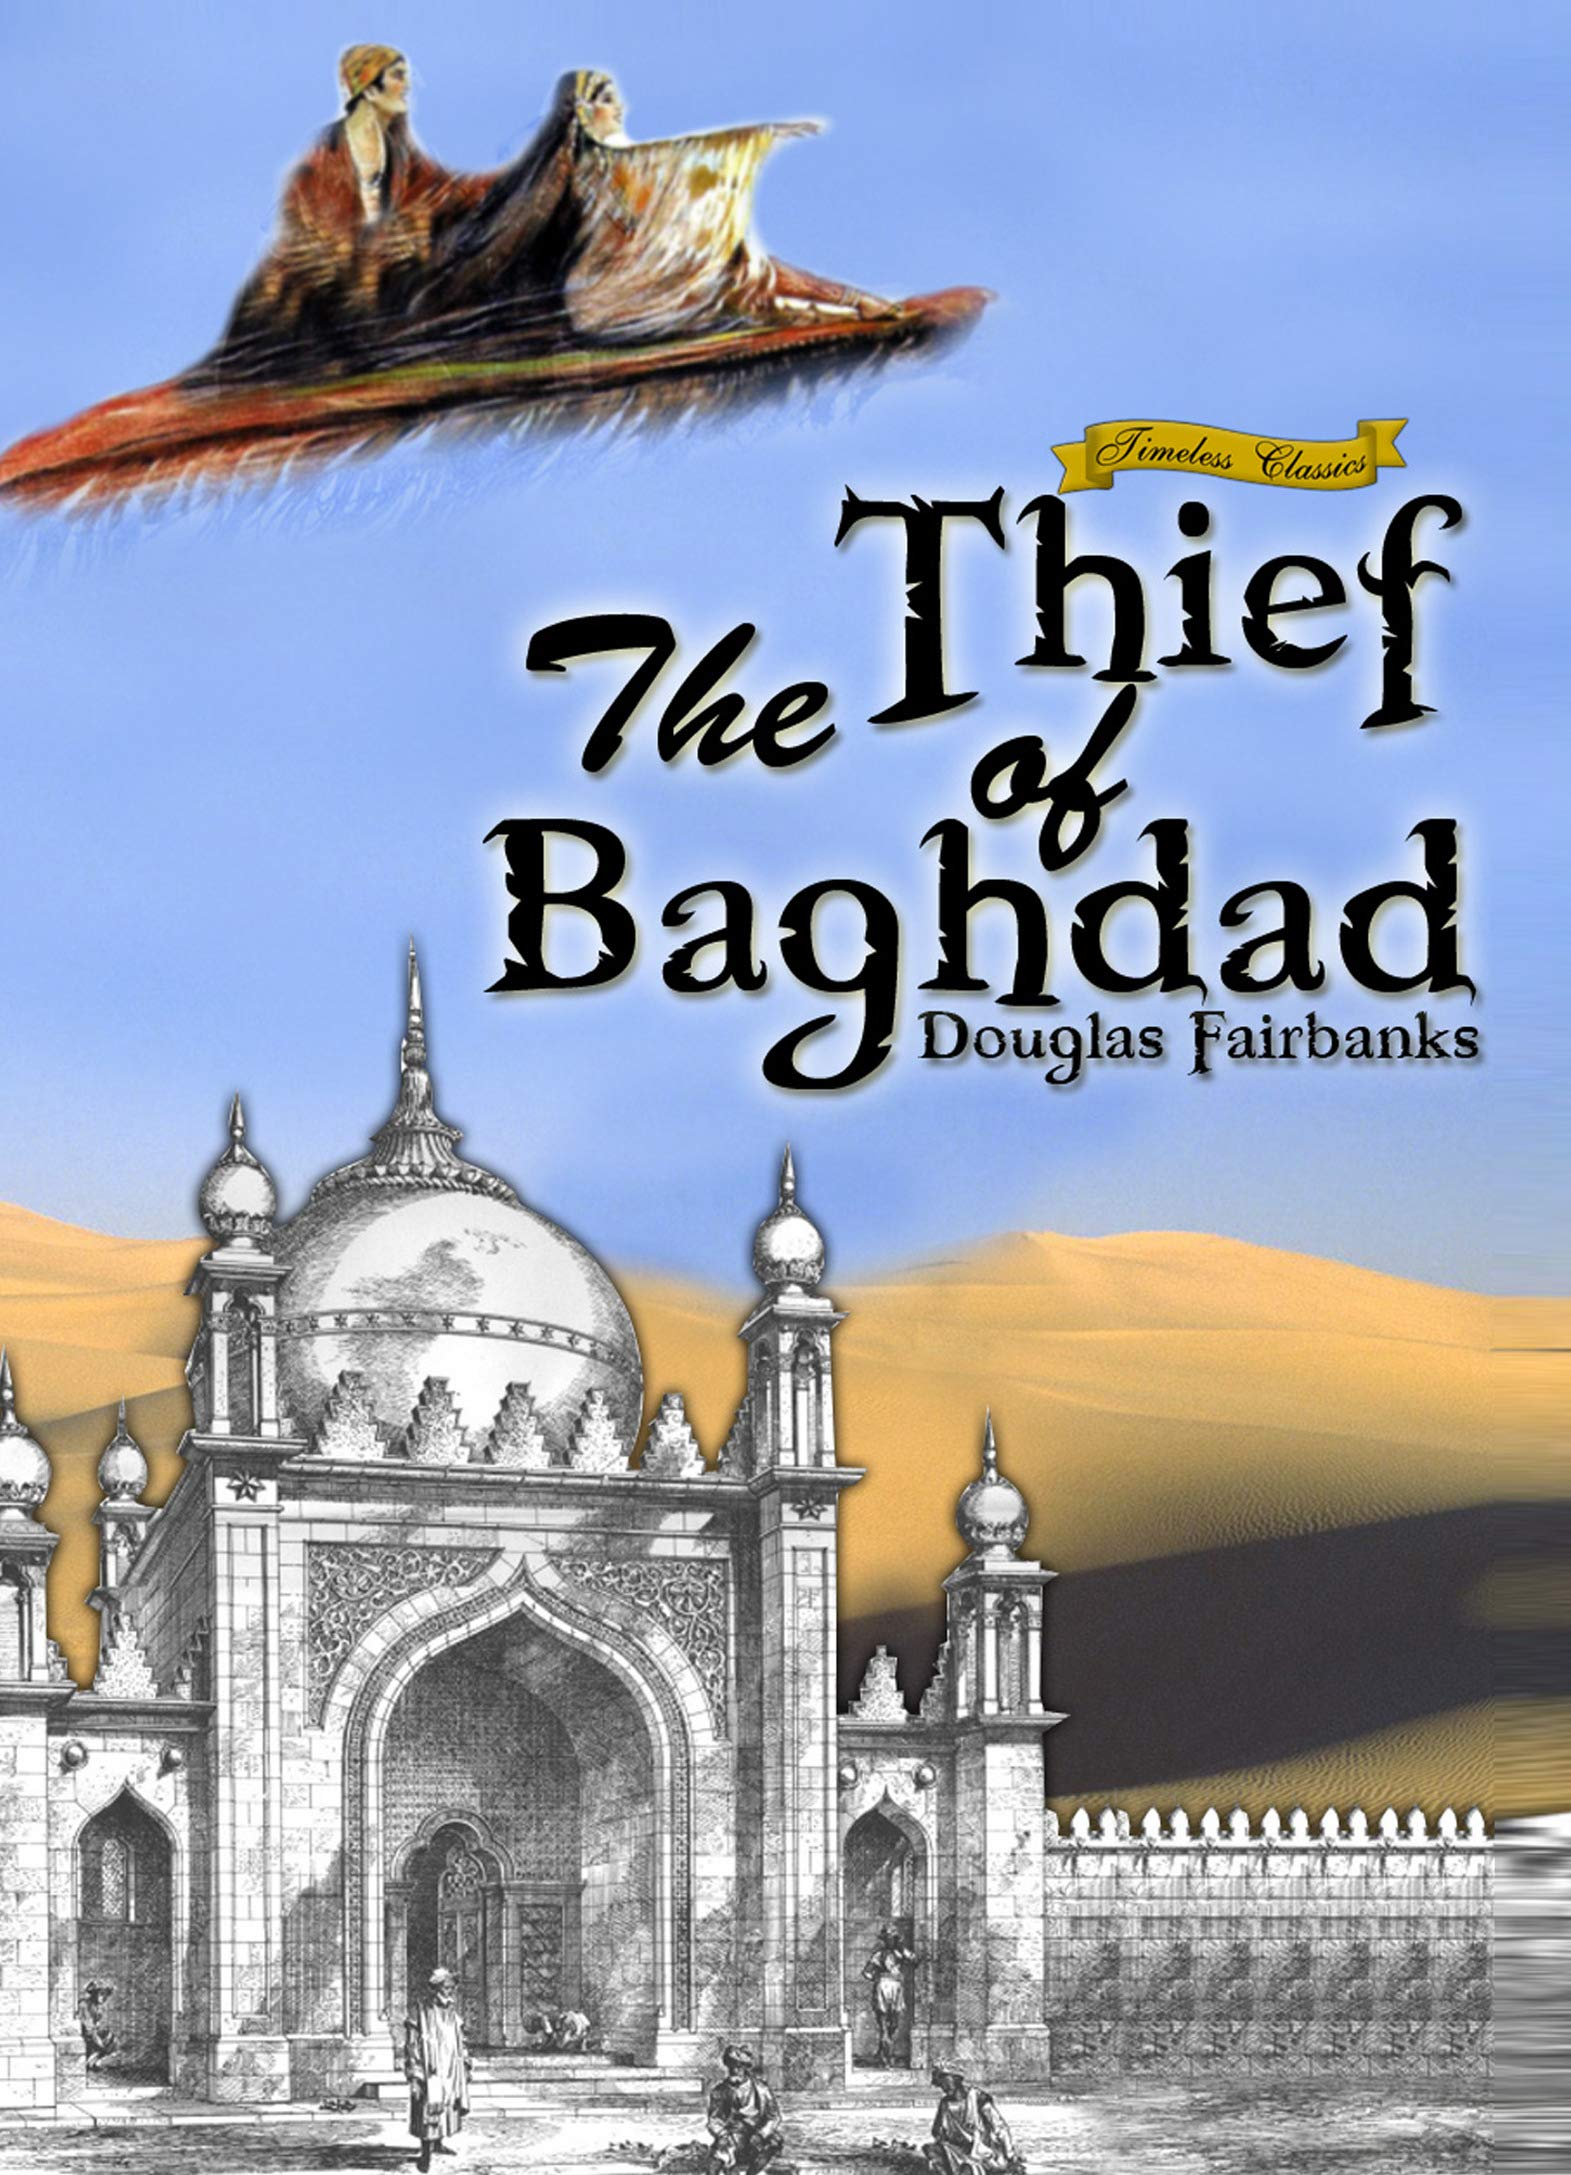 The Thief of Baghdad (1924)